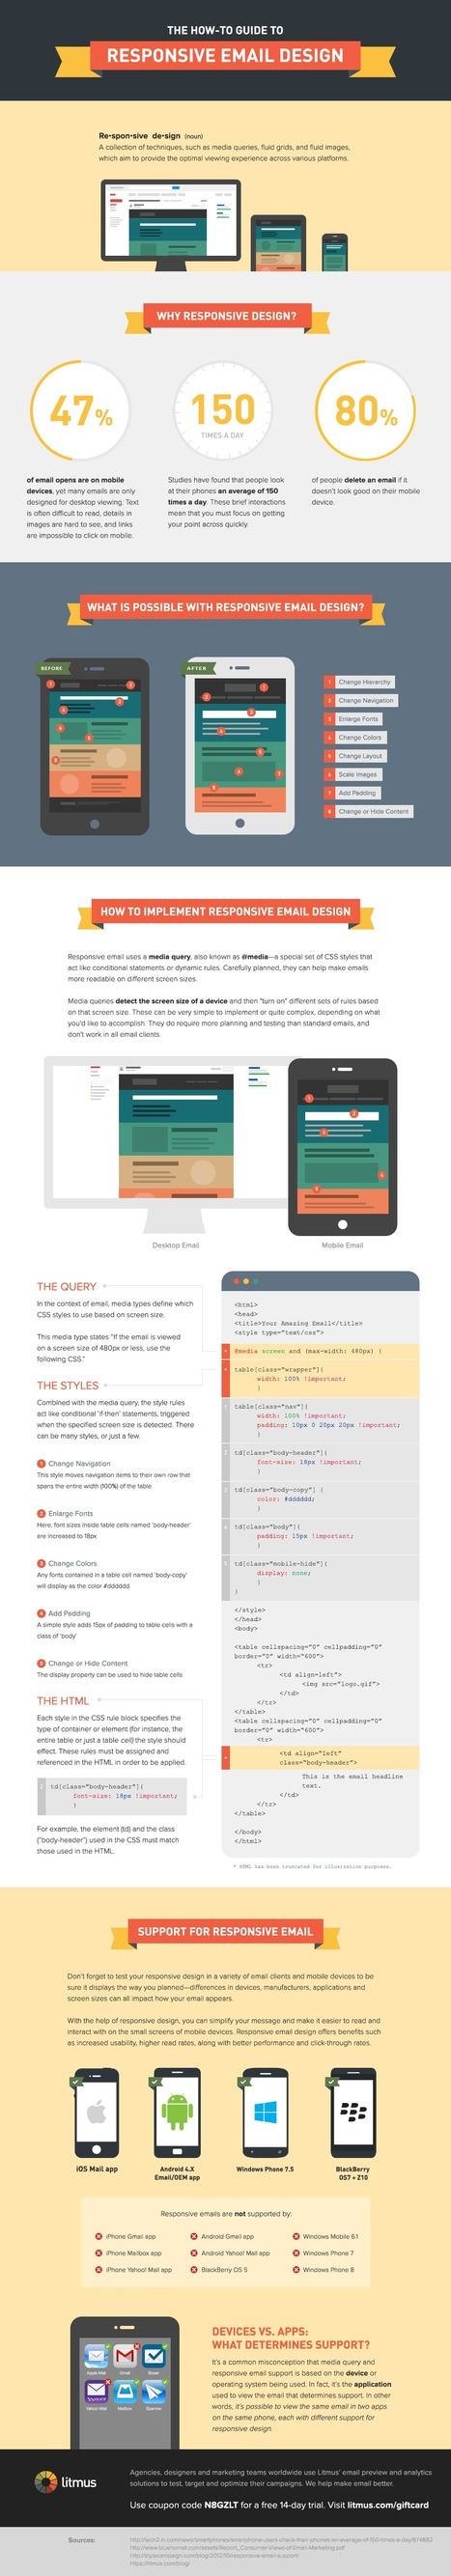 The How-To Guide to Responsive Email Design [Infographic] | COMMUNITY MANAGEMENT - CM2 | Scoop.it